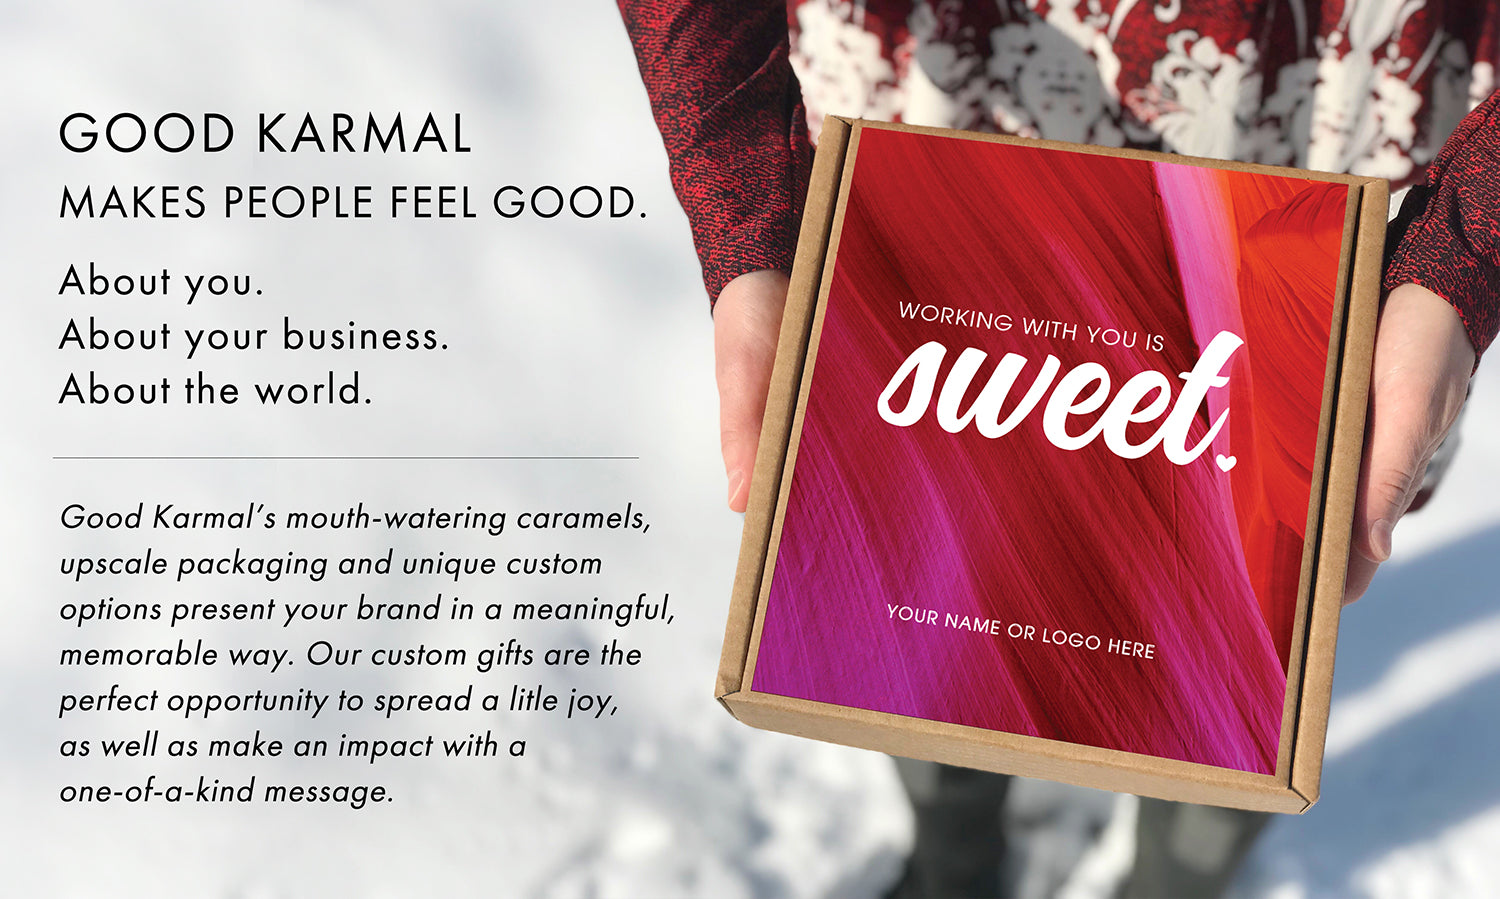 Corporate Gifts from Good Karmal